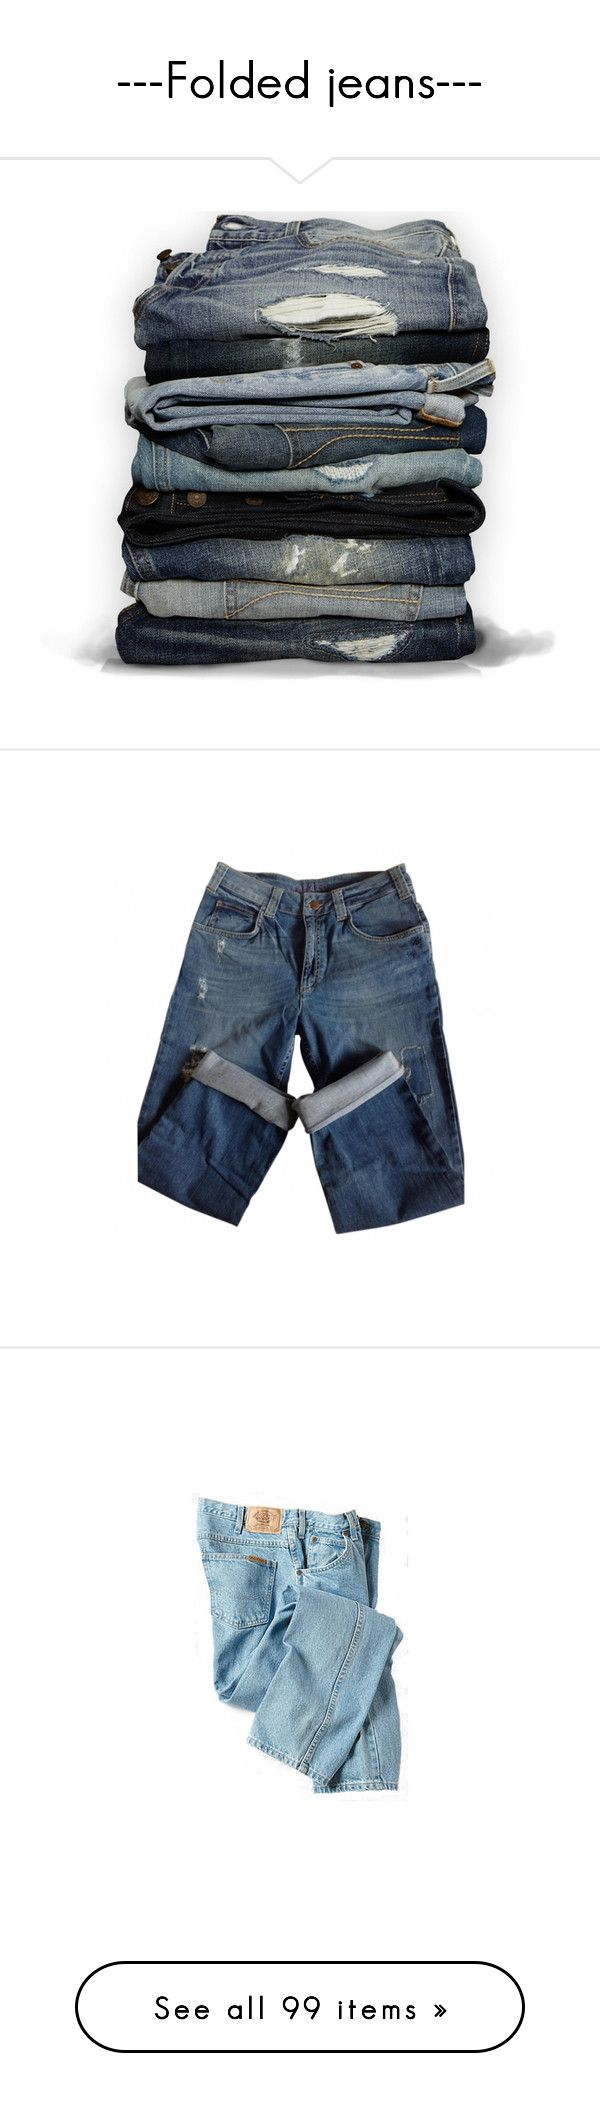 """---Folded jeans---"" by centurythe ❤ liked on Polyvore featuring jeans, pants, bottoms, fillers, blue jeans, checkered jeans, hollister co., hollister co jeans, denim and boyfriend fit jeans"